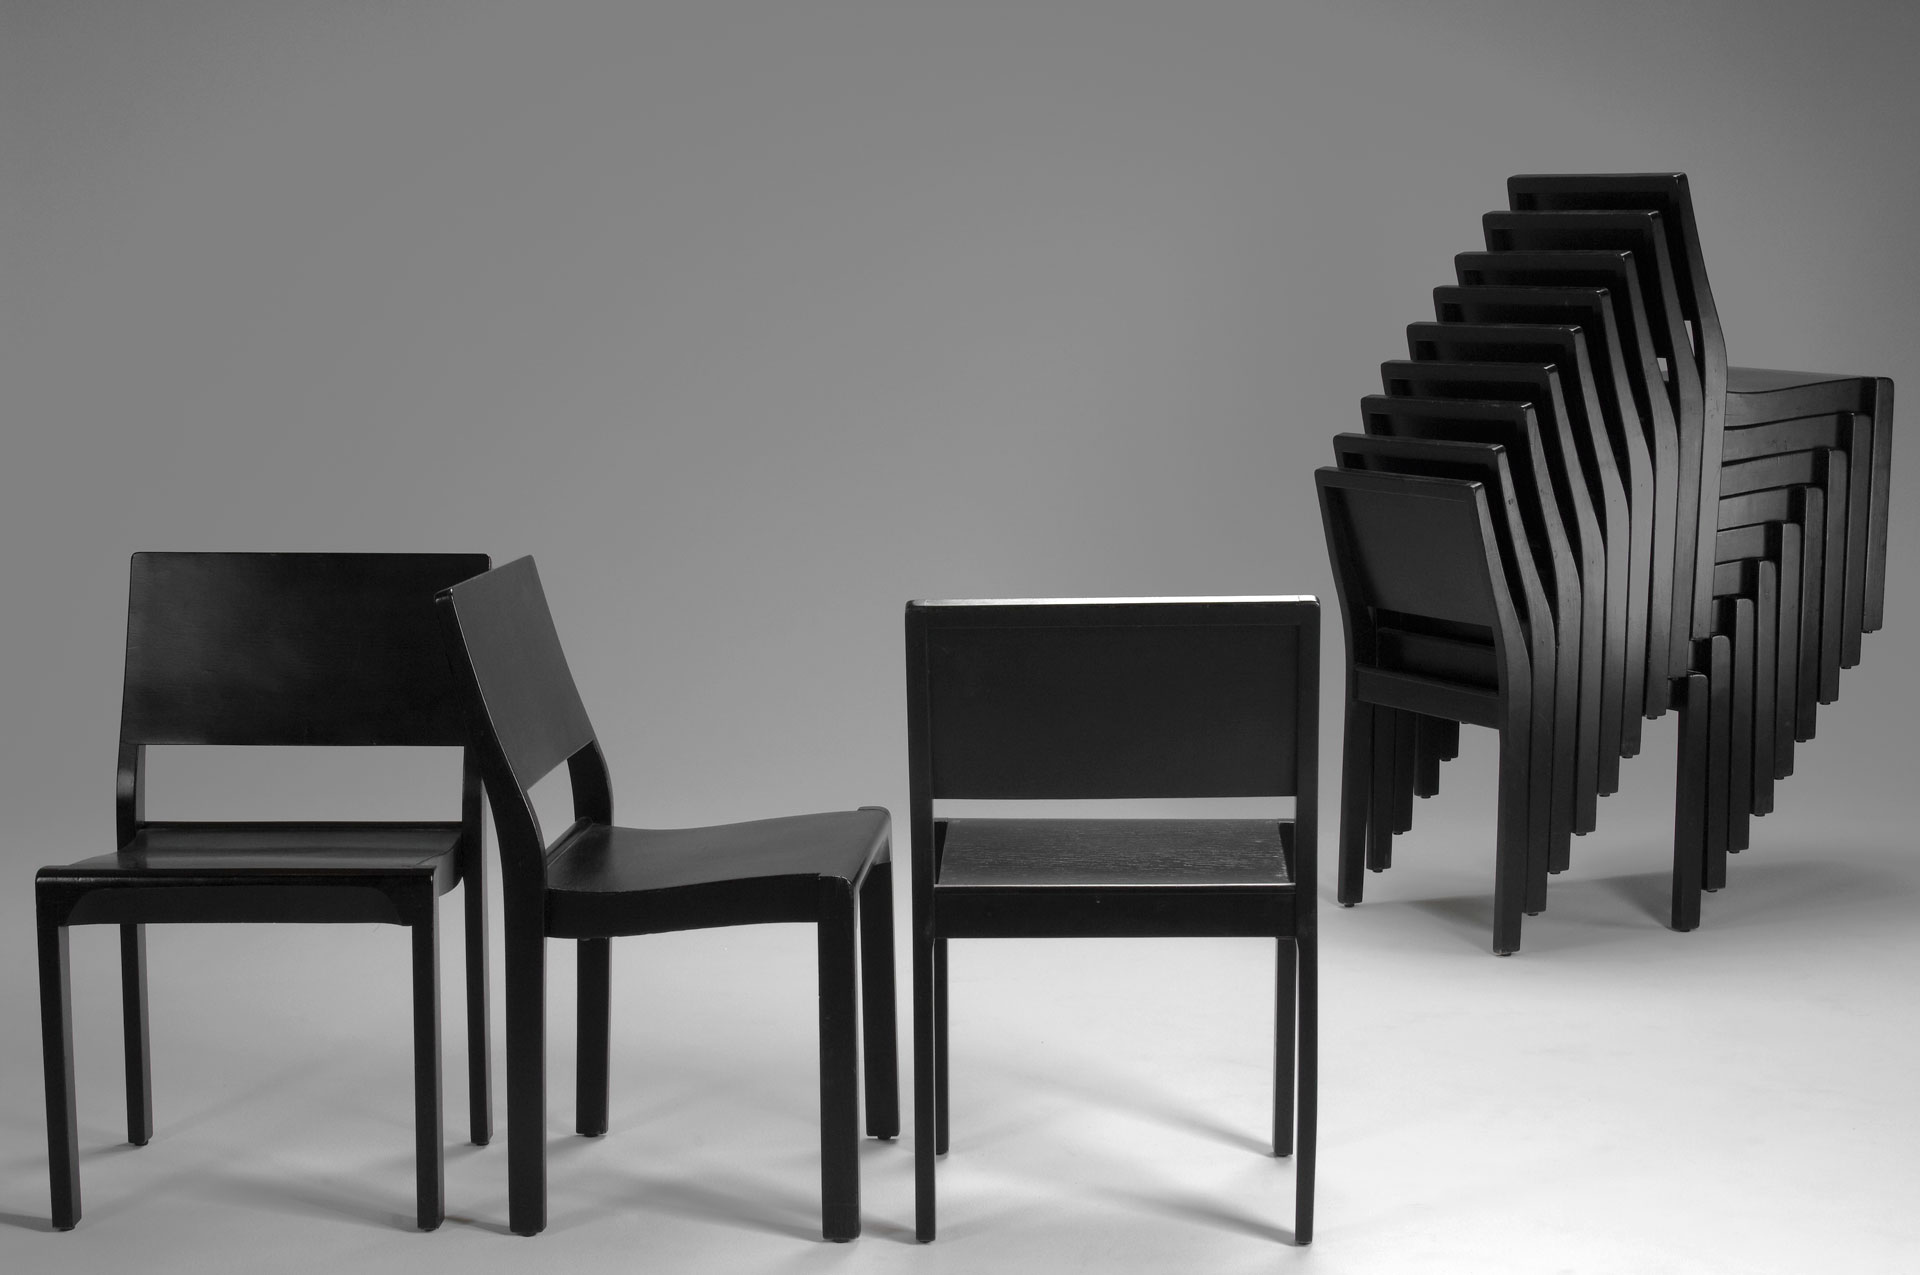 Set of No. 611 Stacking Chairs